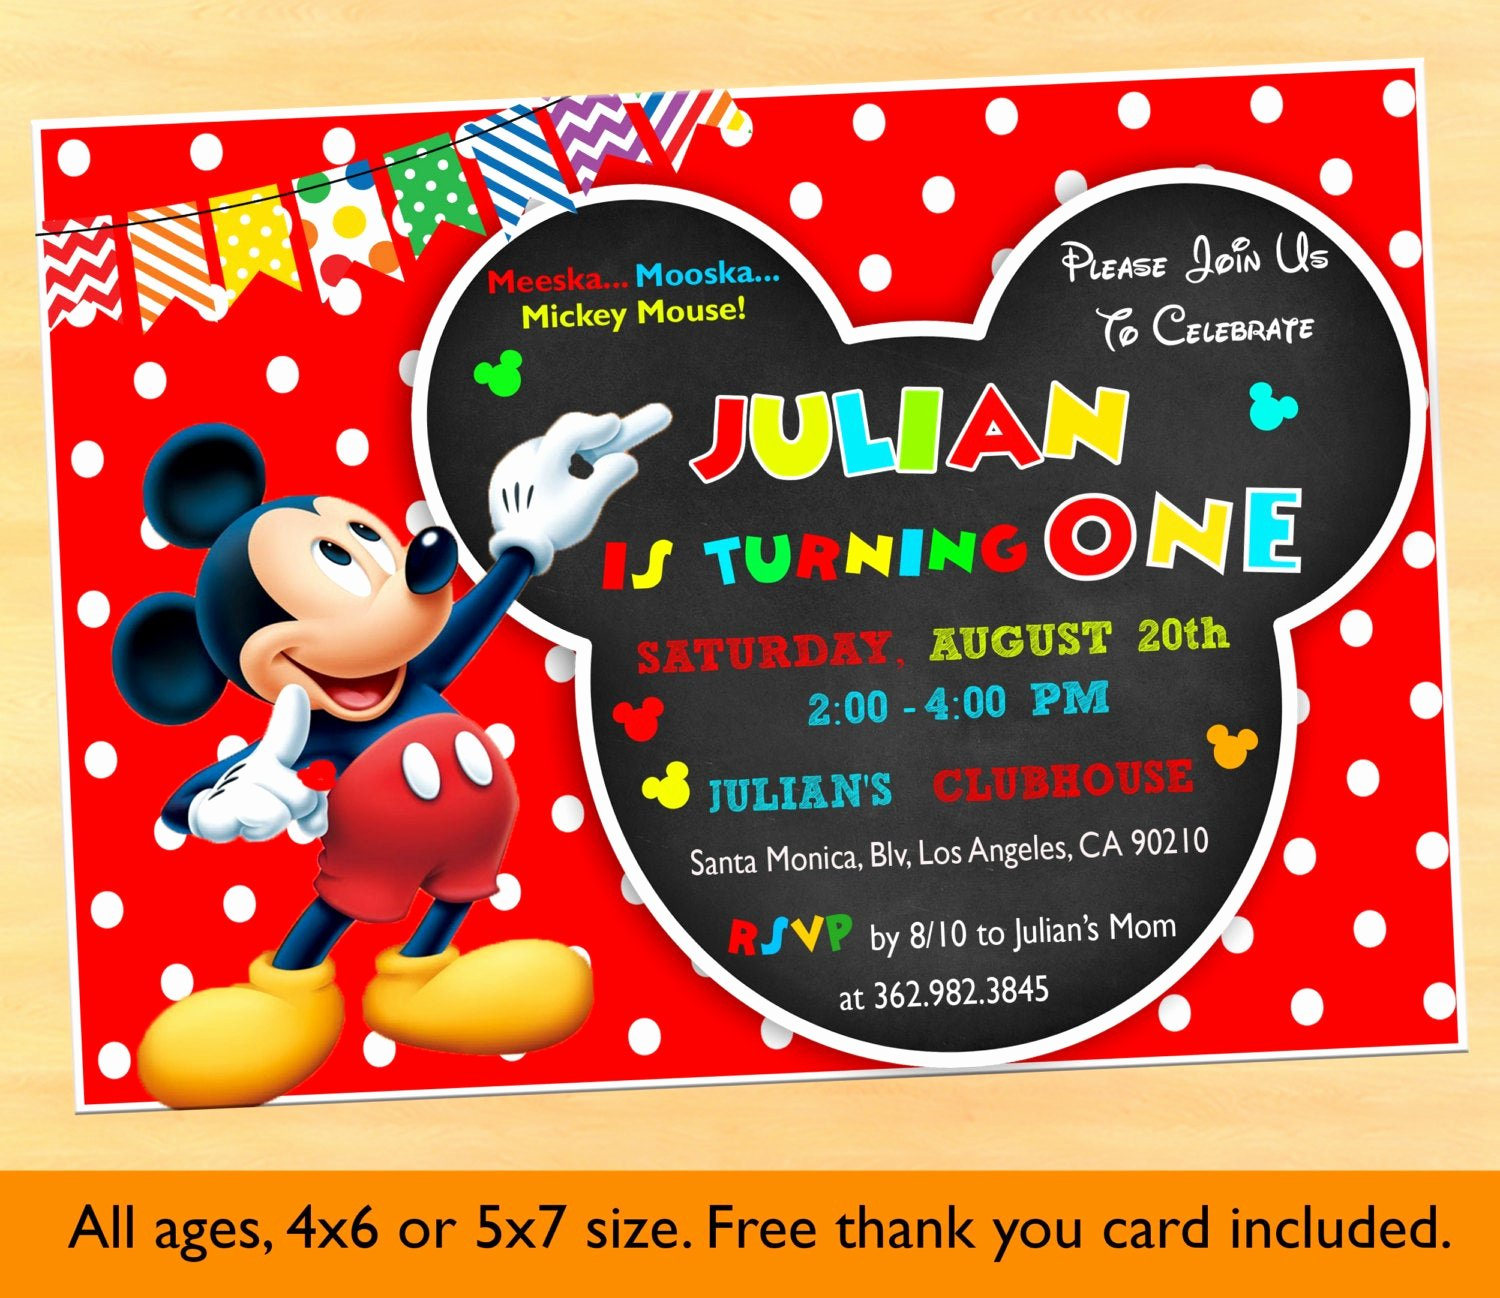 Mickey Mouse Birthday Invites Unique Mickey Mouse Clubhouse 1st Birthday Invitations Mickey Mouse